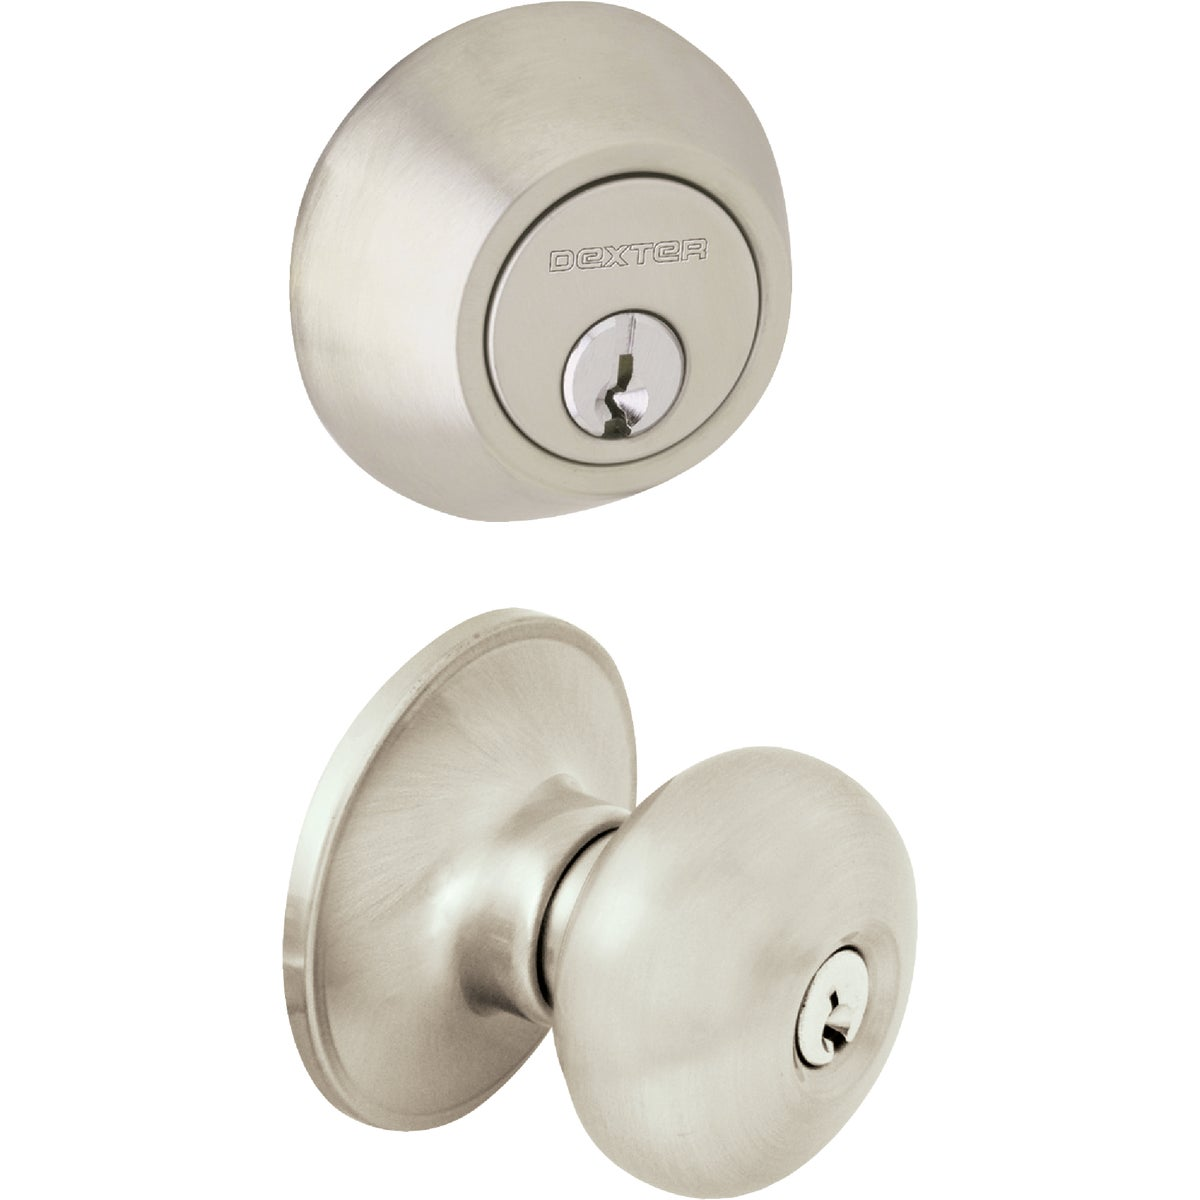 SN STRATUS ENTRY COMBO - JC60VSTR619 by Schlage Lock Co